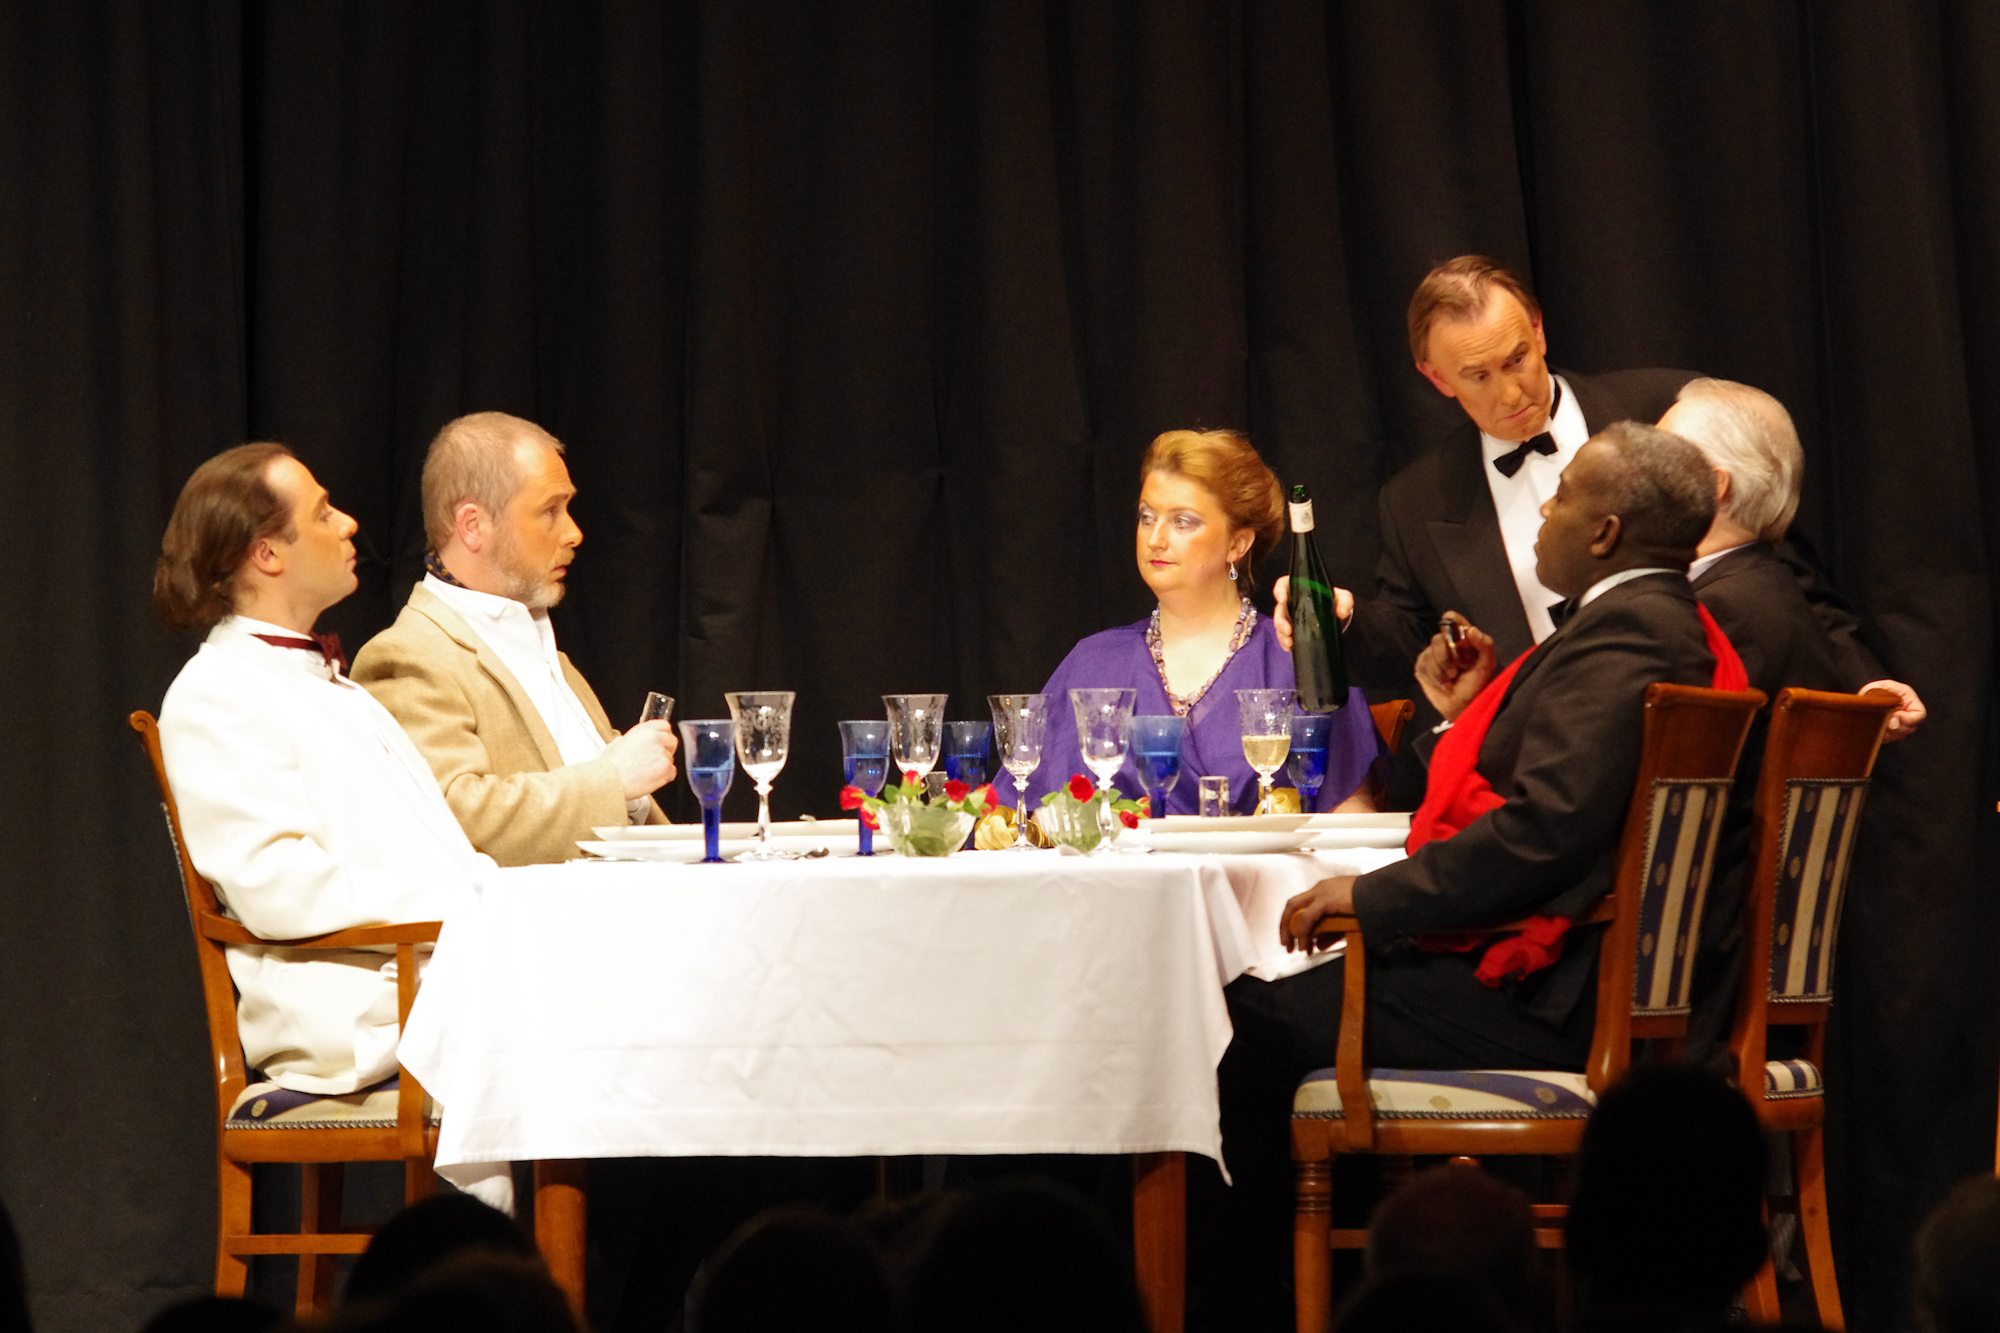 "Olivier Gigaud, Jürgen Stockhausen, Sarnia Schlüßer, Mike Riepl, Roy Mroch and Joesph Sweet in ""Dinner for Five"" by Mike Riepl - Jan / Feb 2012"